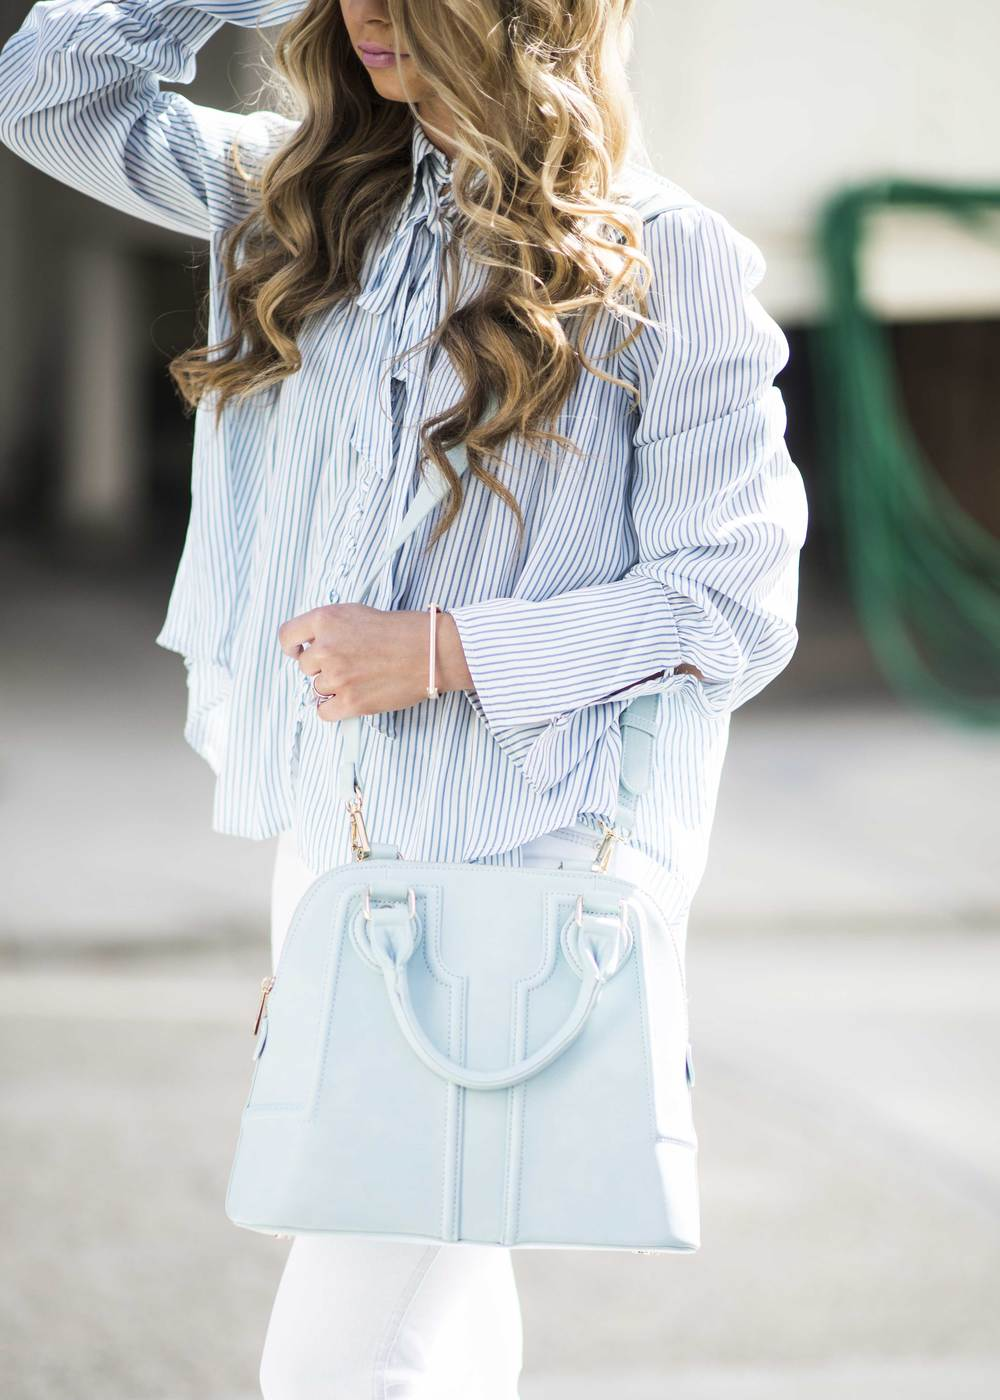 JessaKae- pastel outfit with pinstripes